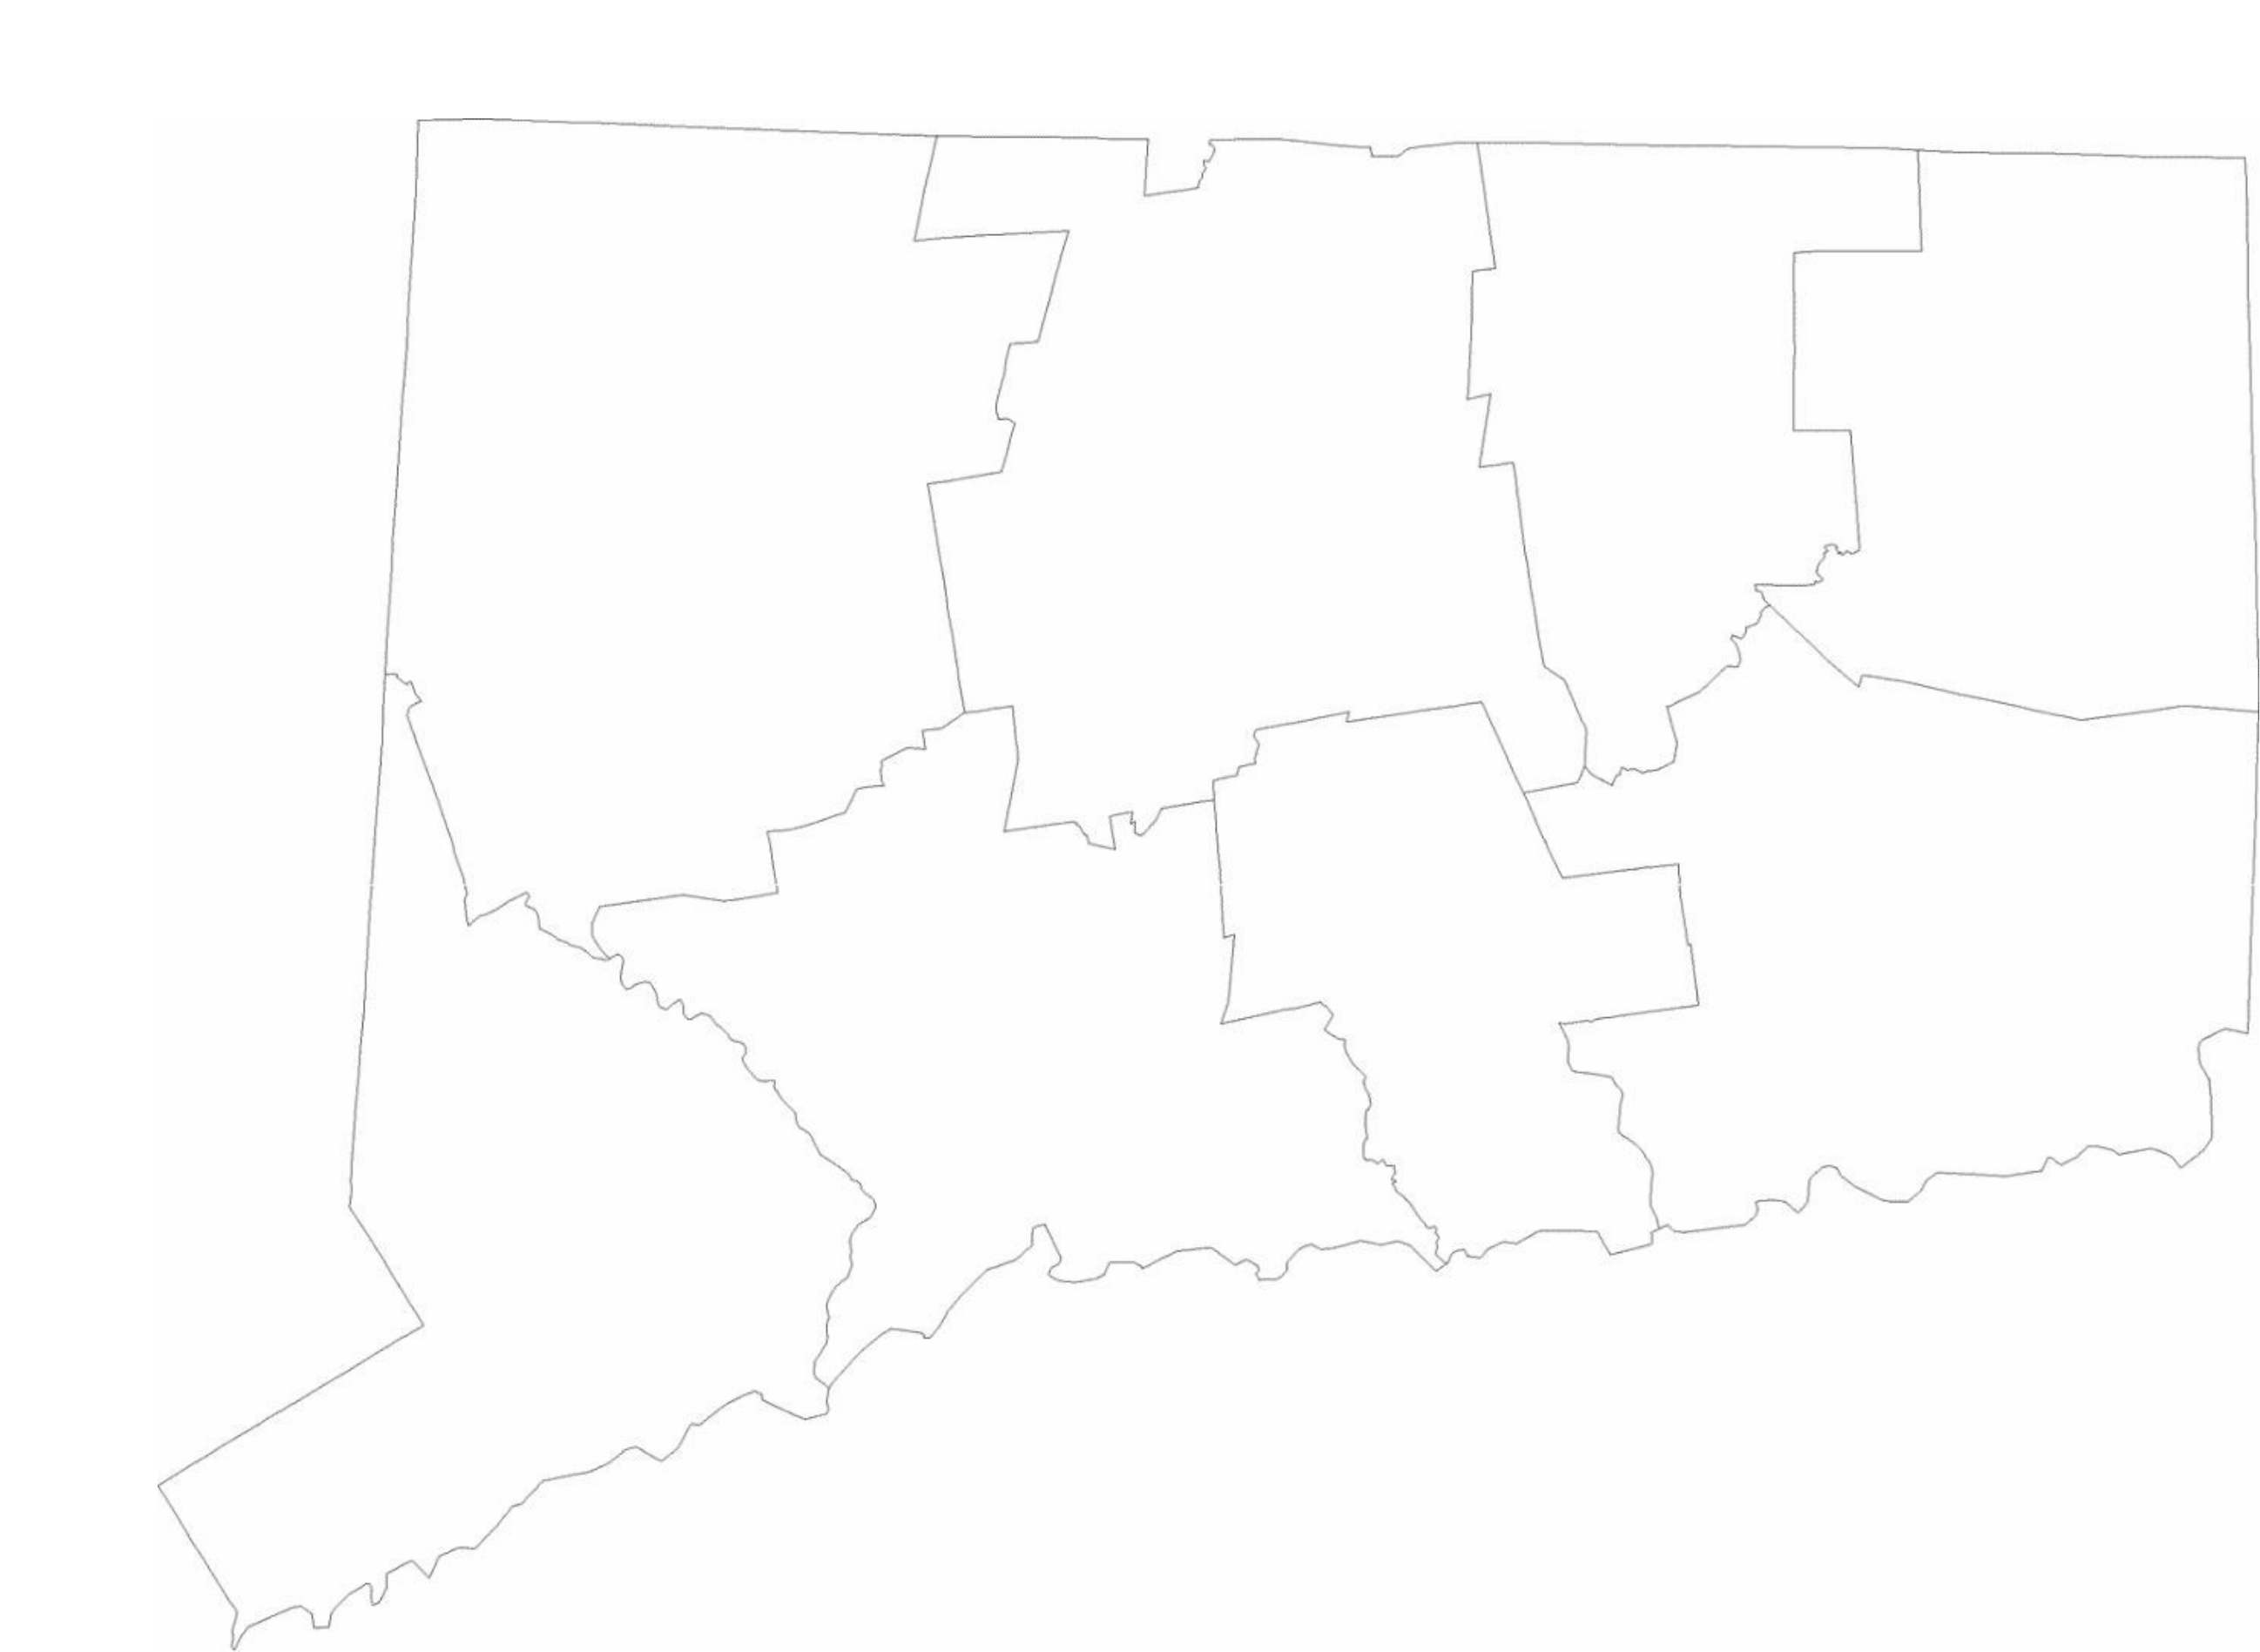 blank connecticut county map free download